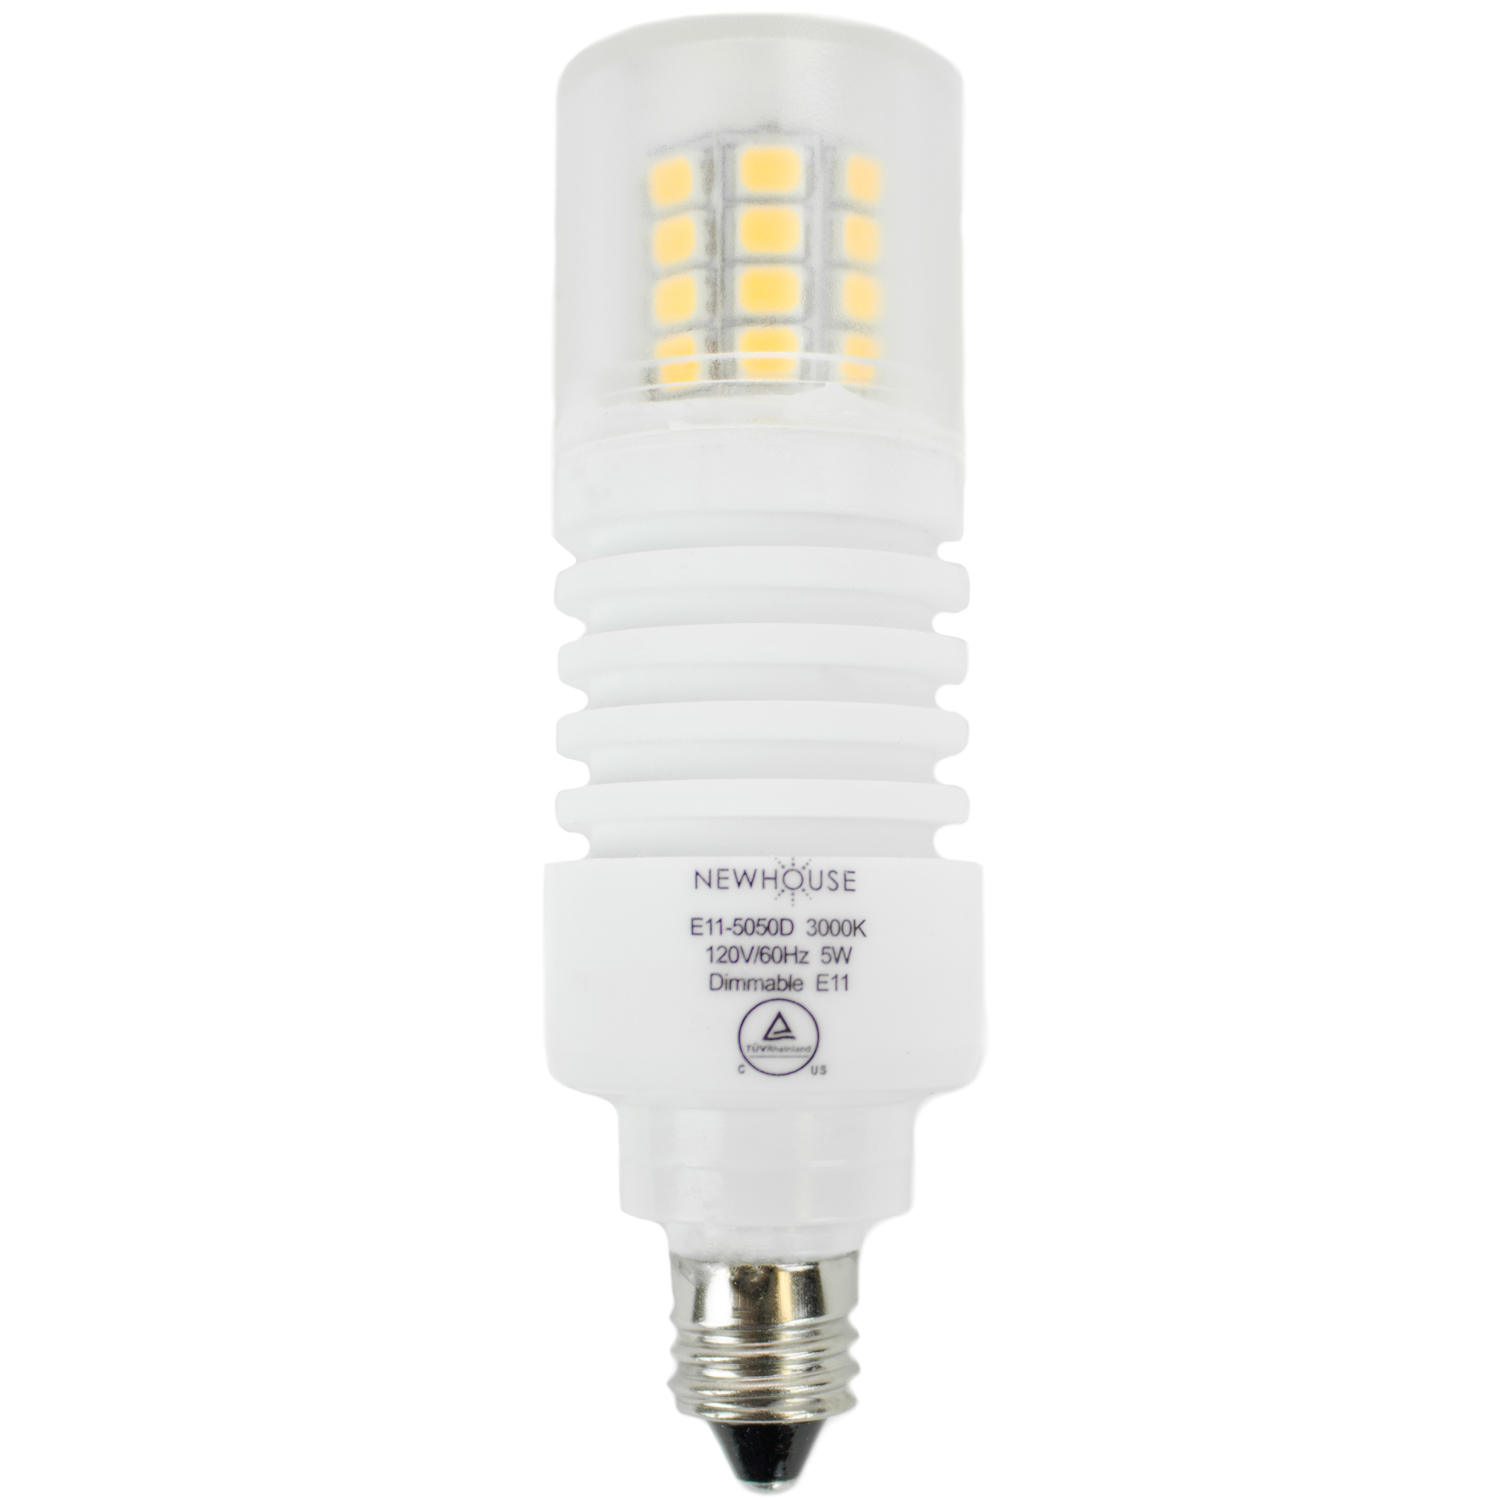 co uk dp lighting w philips bulbs warm can edison v light frosted bulb led white amazon screw